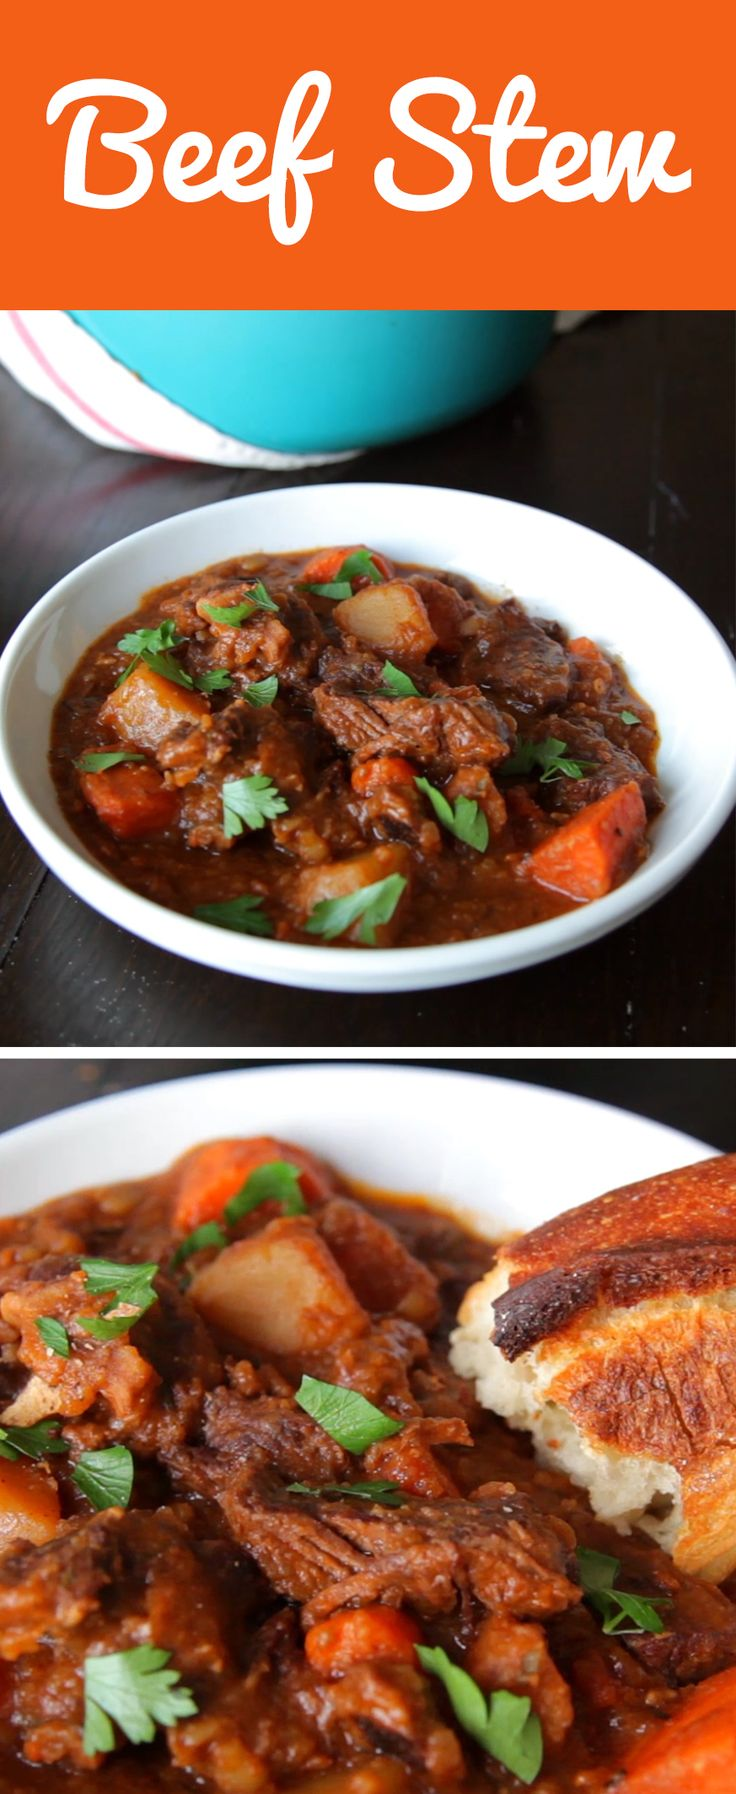 Classic beef stew. Oxtail served more as a flavoring agent for the stew than as another component to eat.